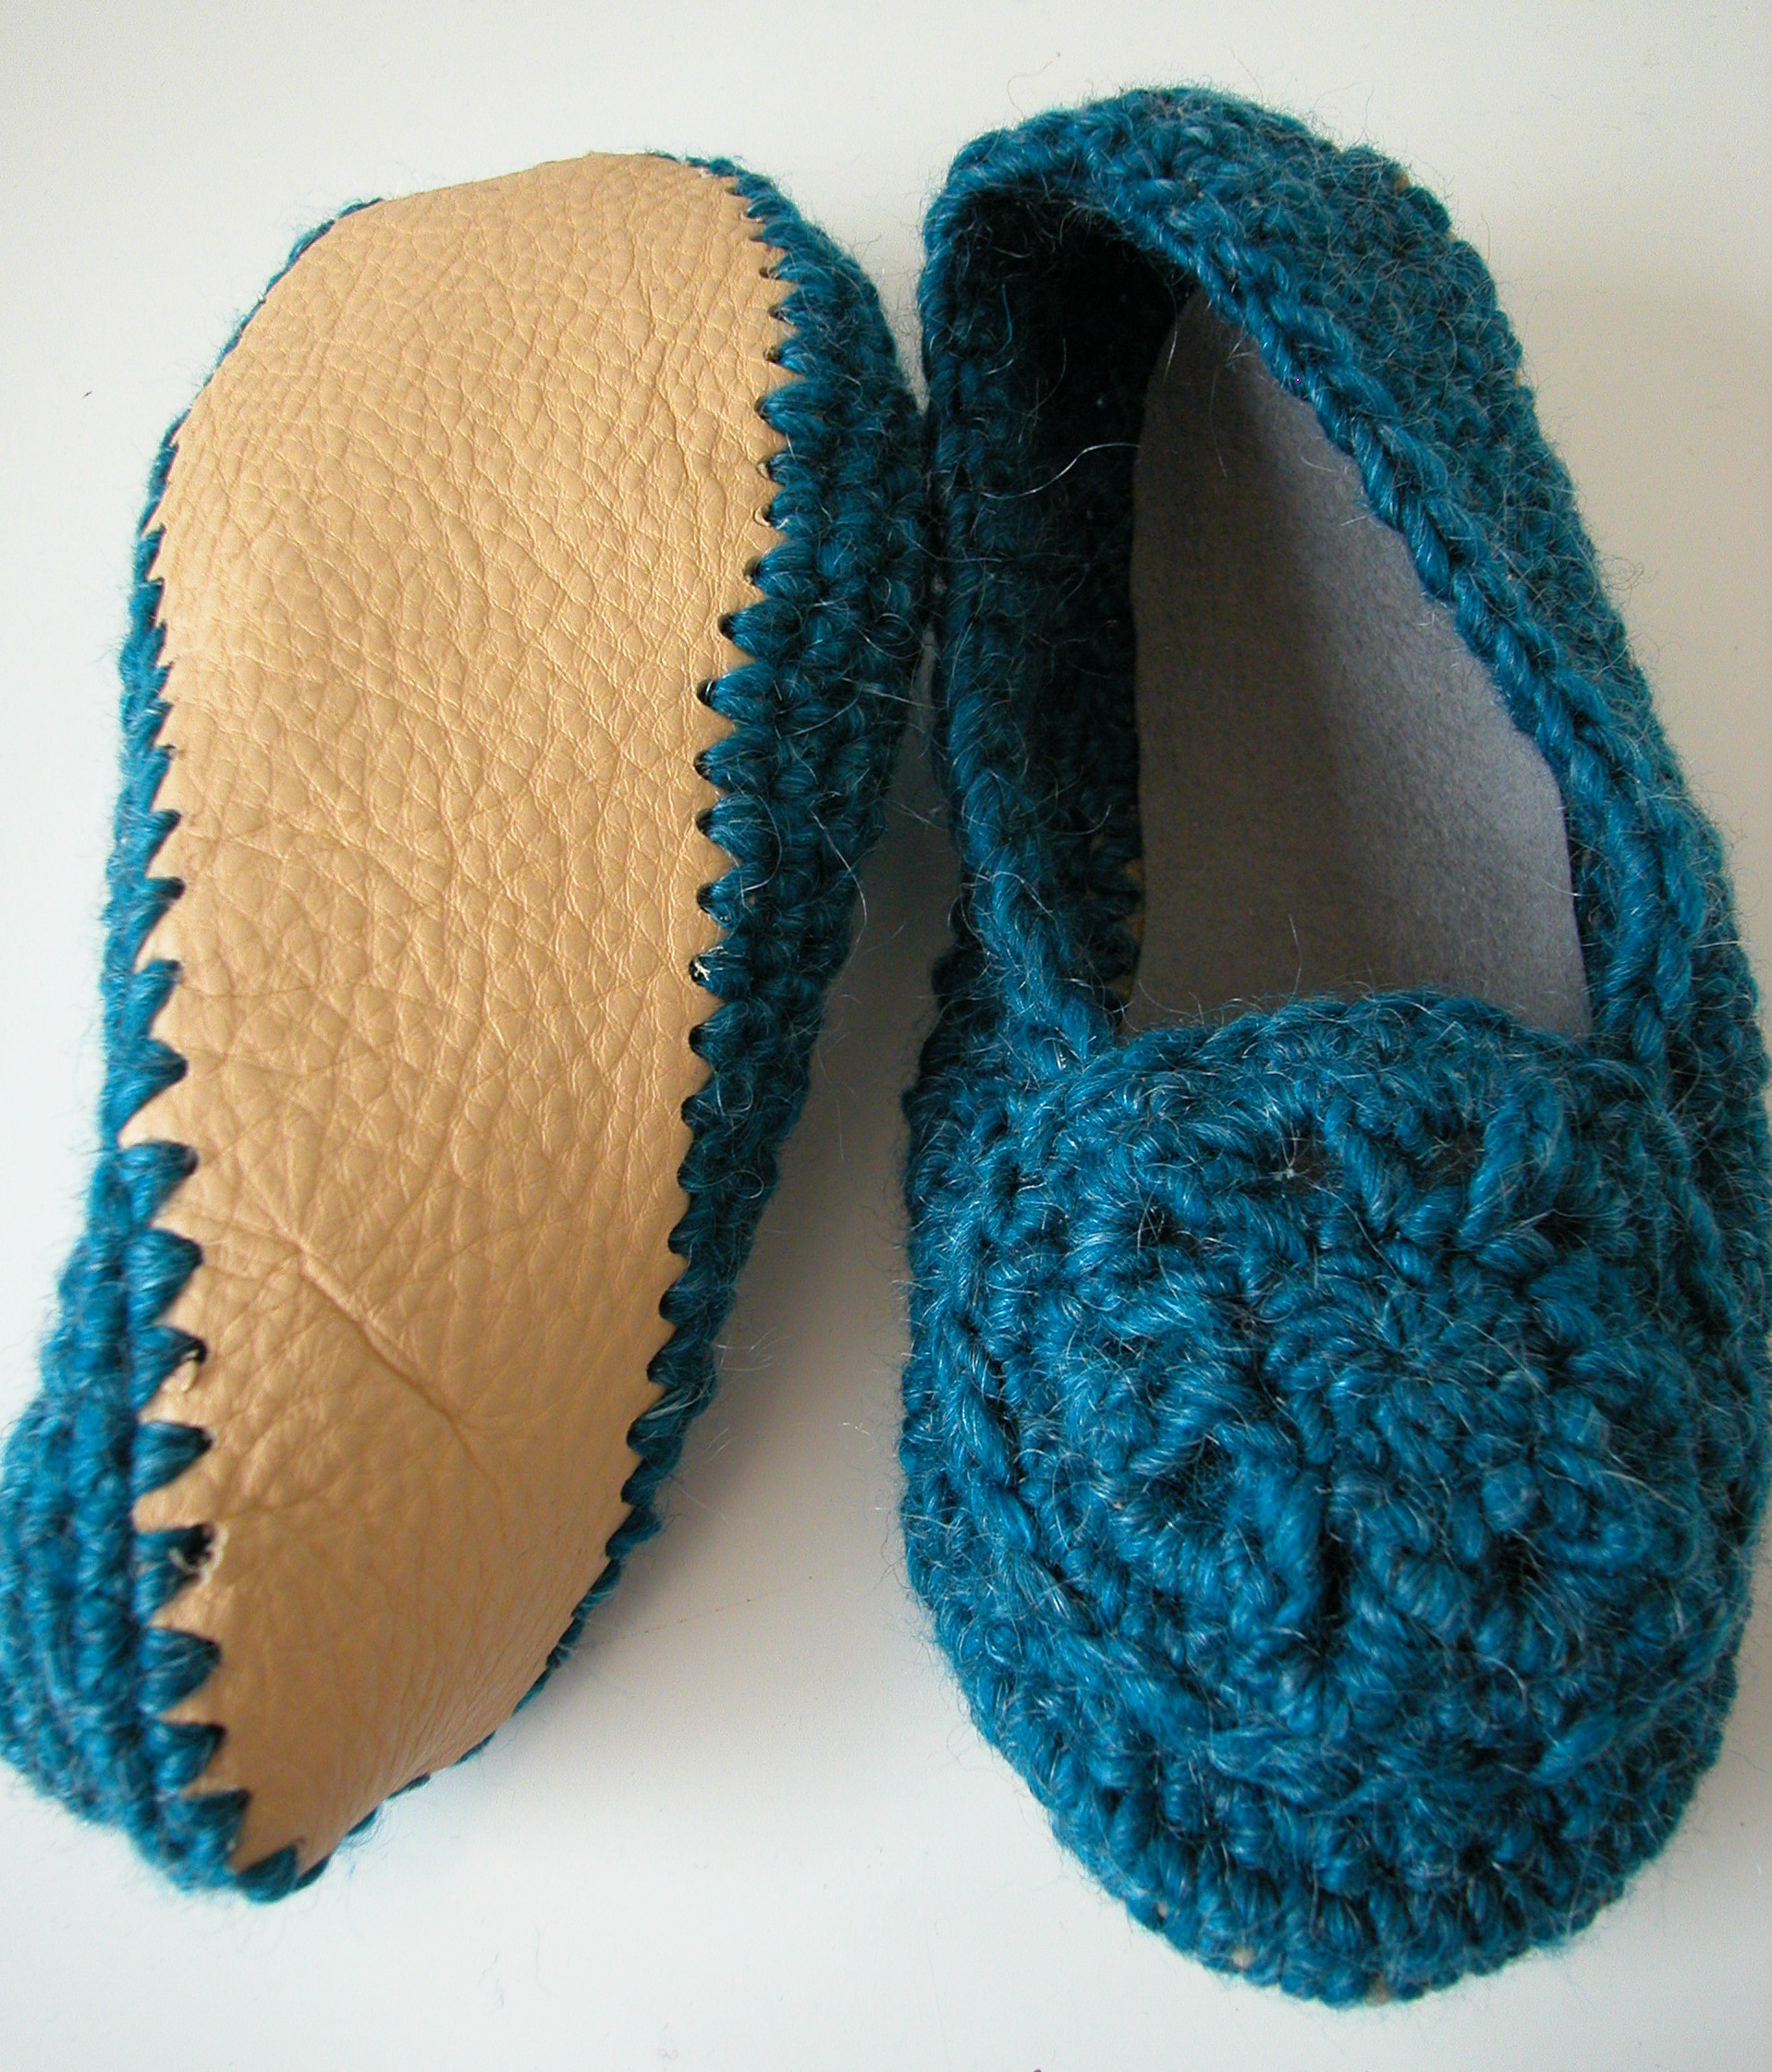 Crochet Slipper socks Best Of Crochet Slipper Class Of Charming 47 Photos Crochet Slipper socks